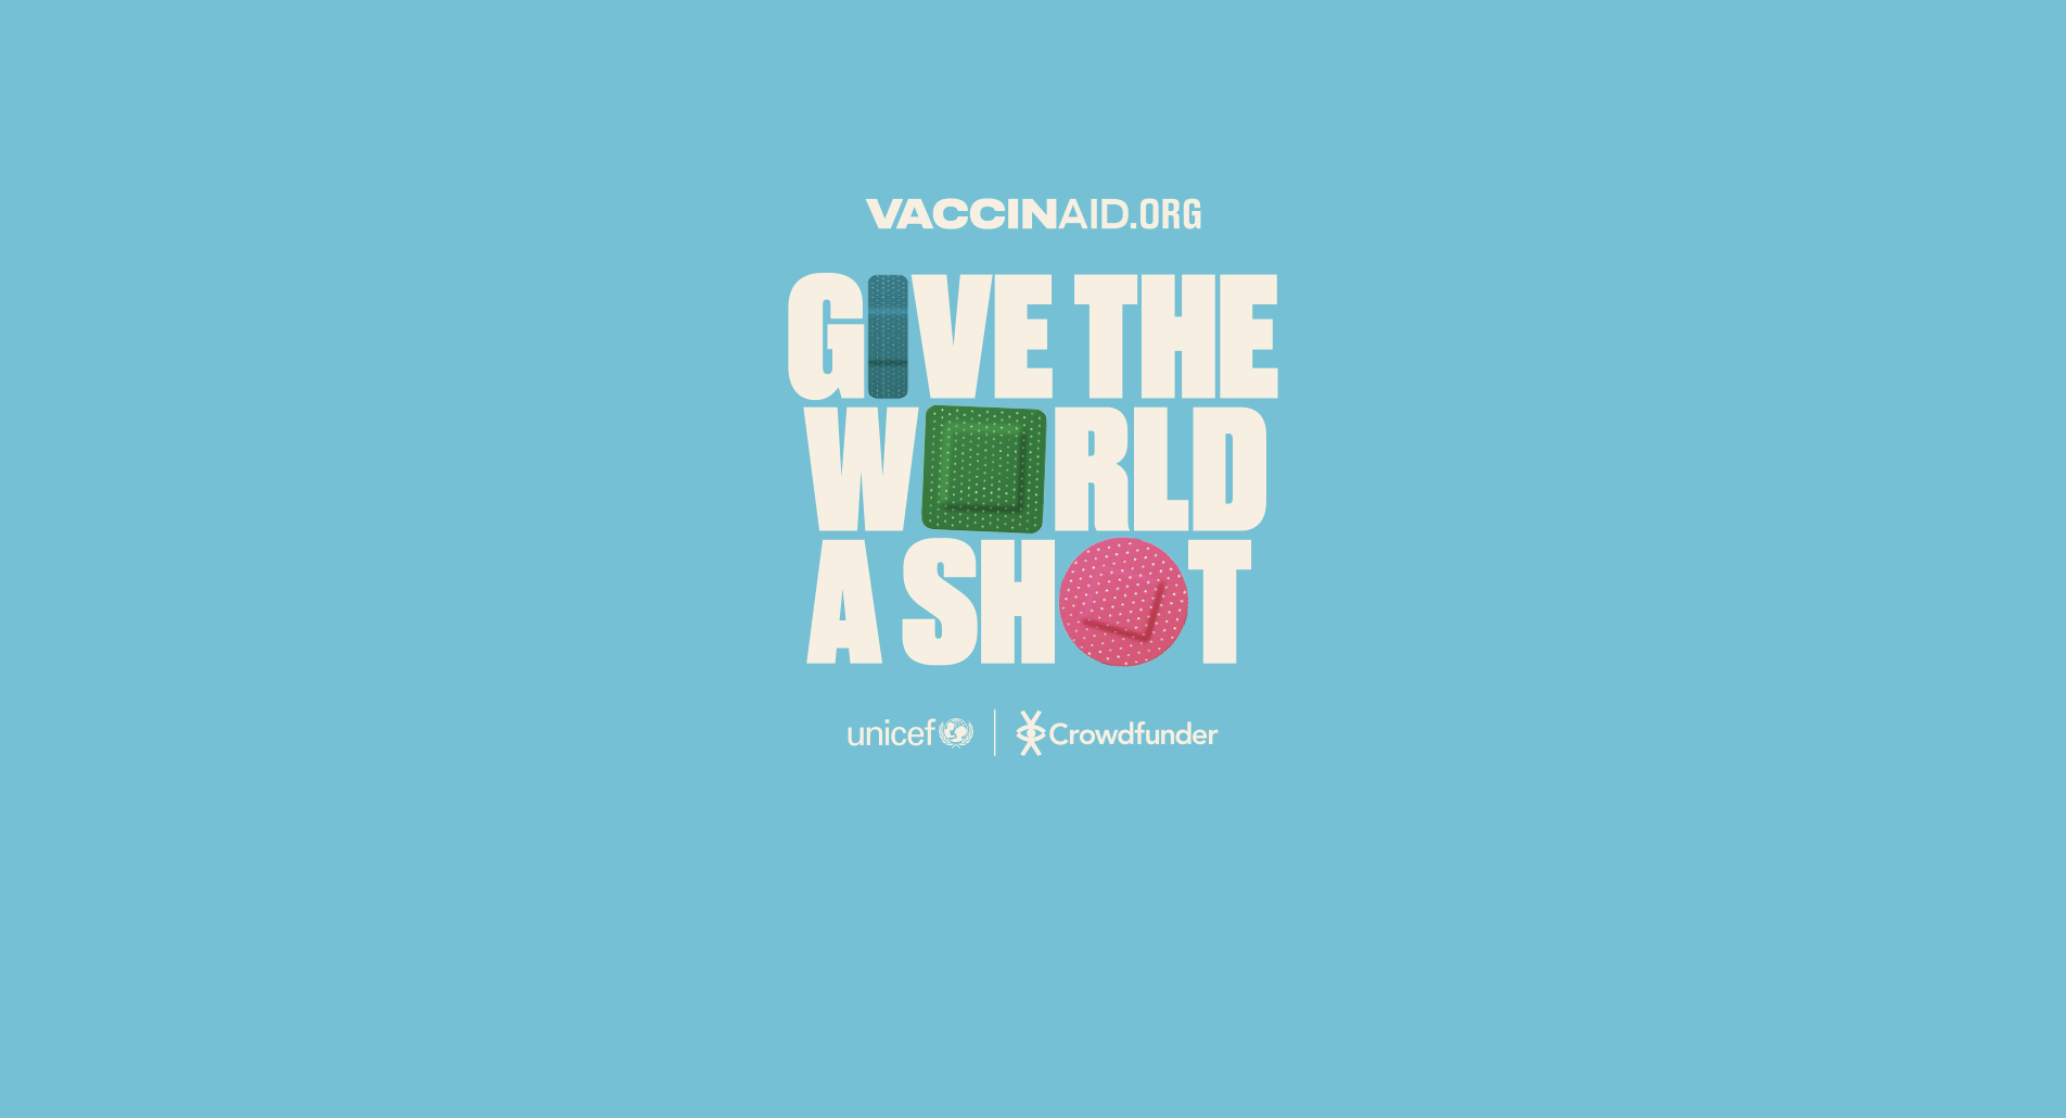 Unicef VaccinAid - Give The World A Shot